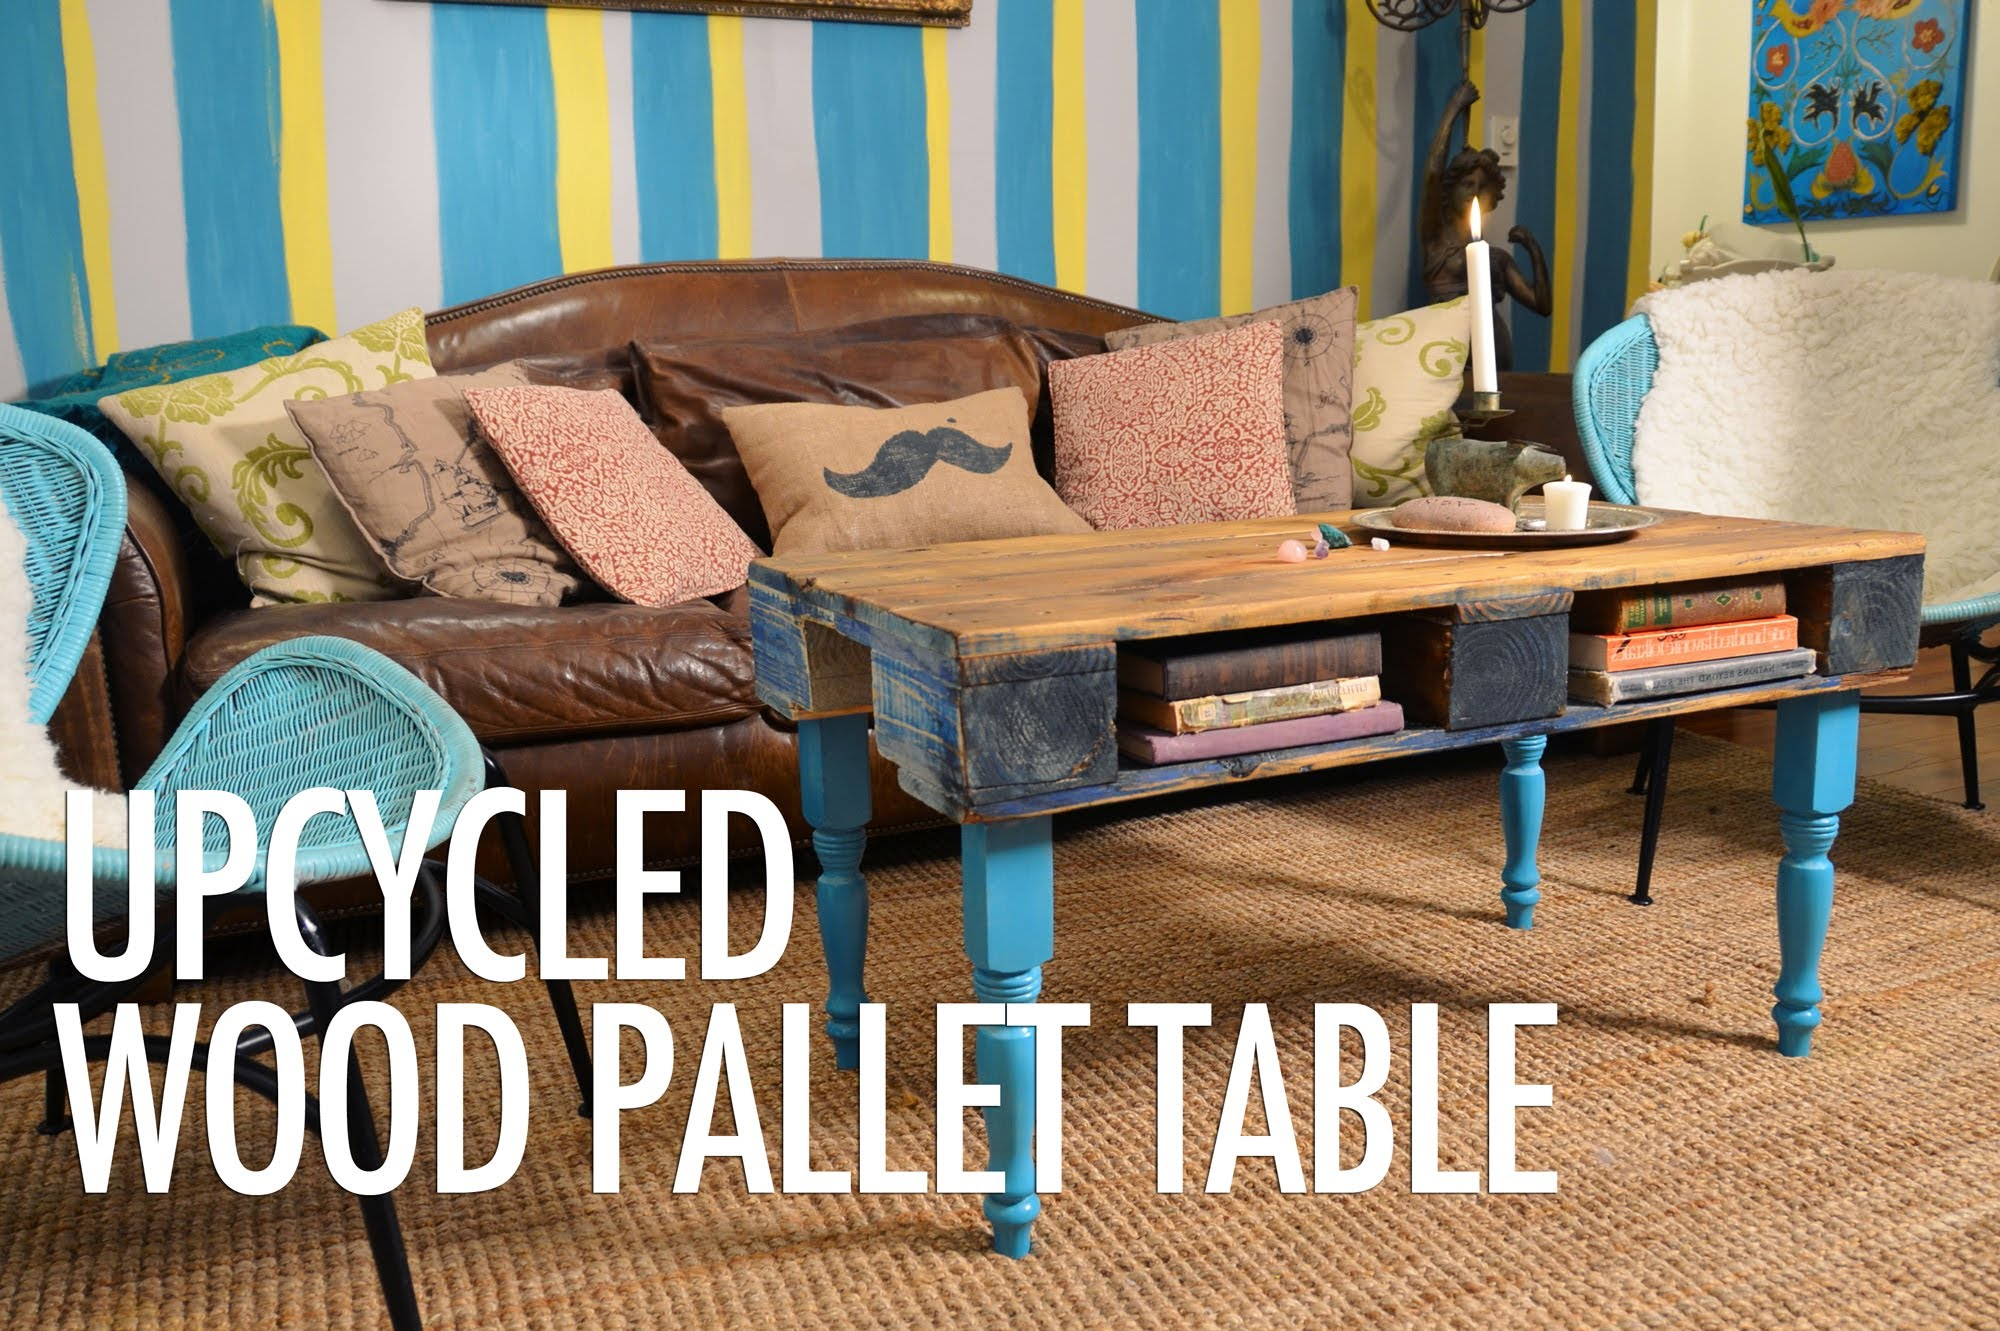 Watch How She Makes An Awesome Pallet Coffee Table For A Stylish Eclectic Look